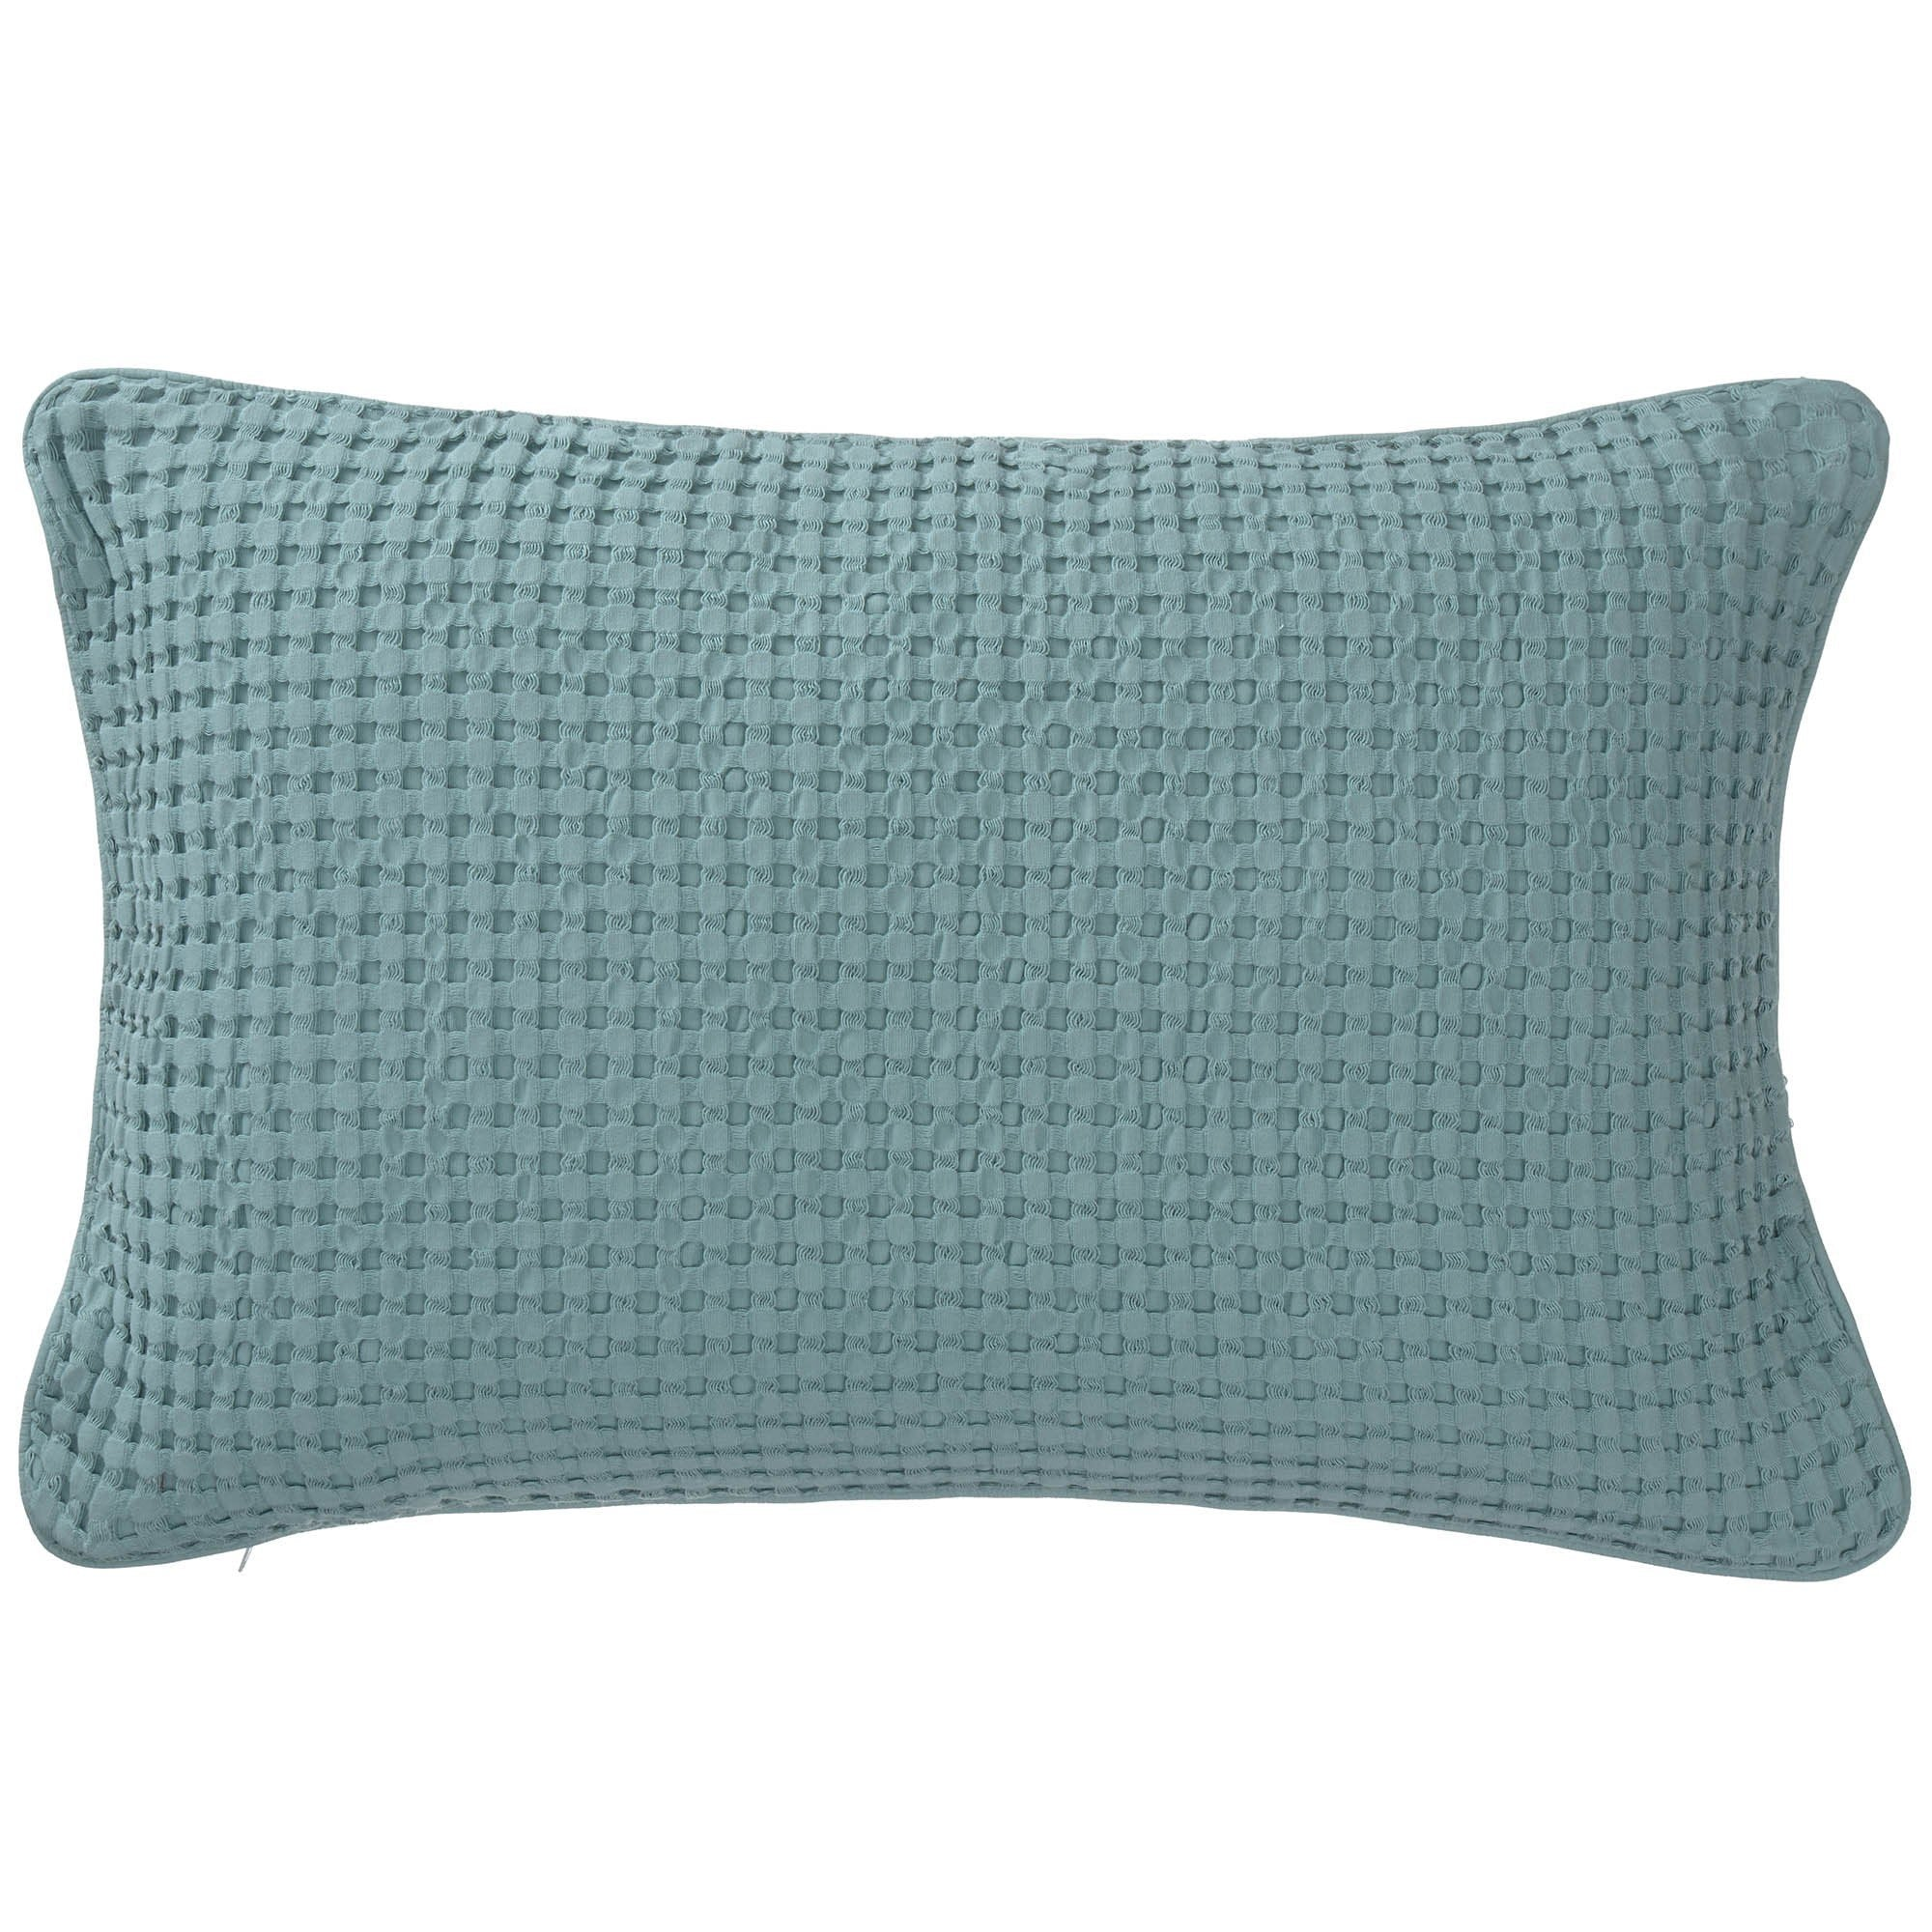 Veiros cushion cover, green grey, 100% cotton